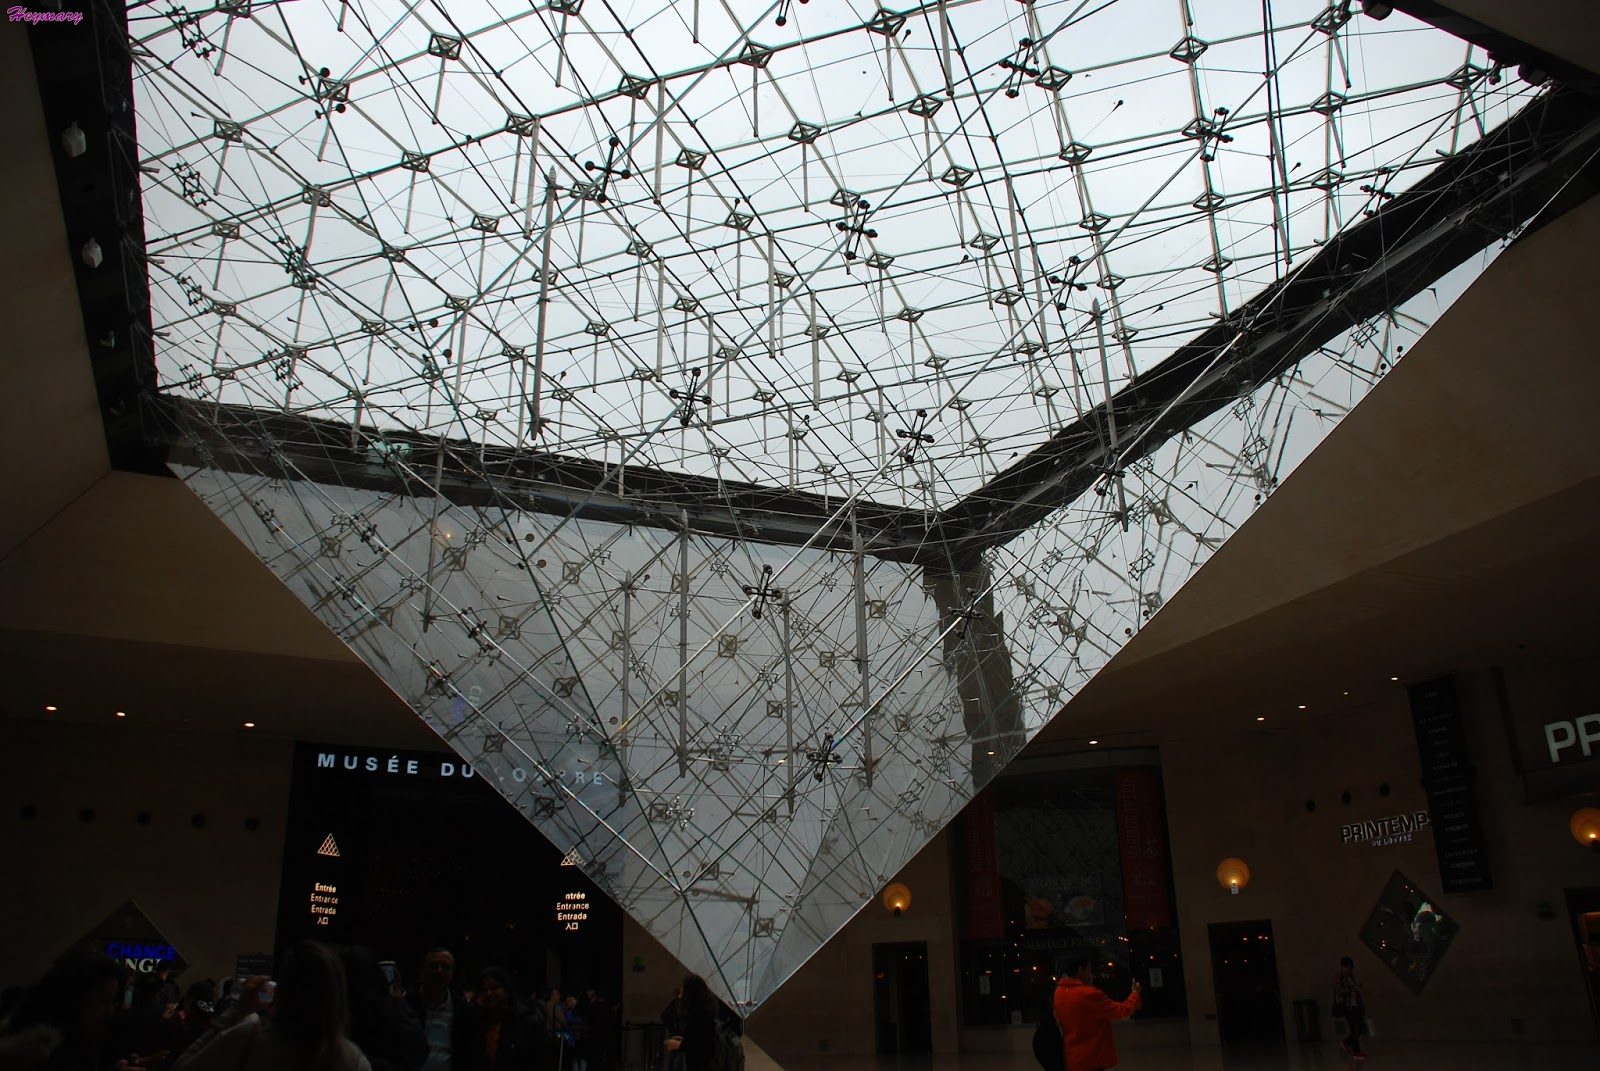 羅浮宮The Louvre